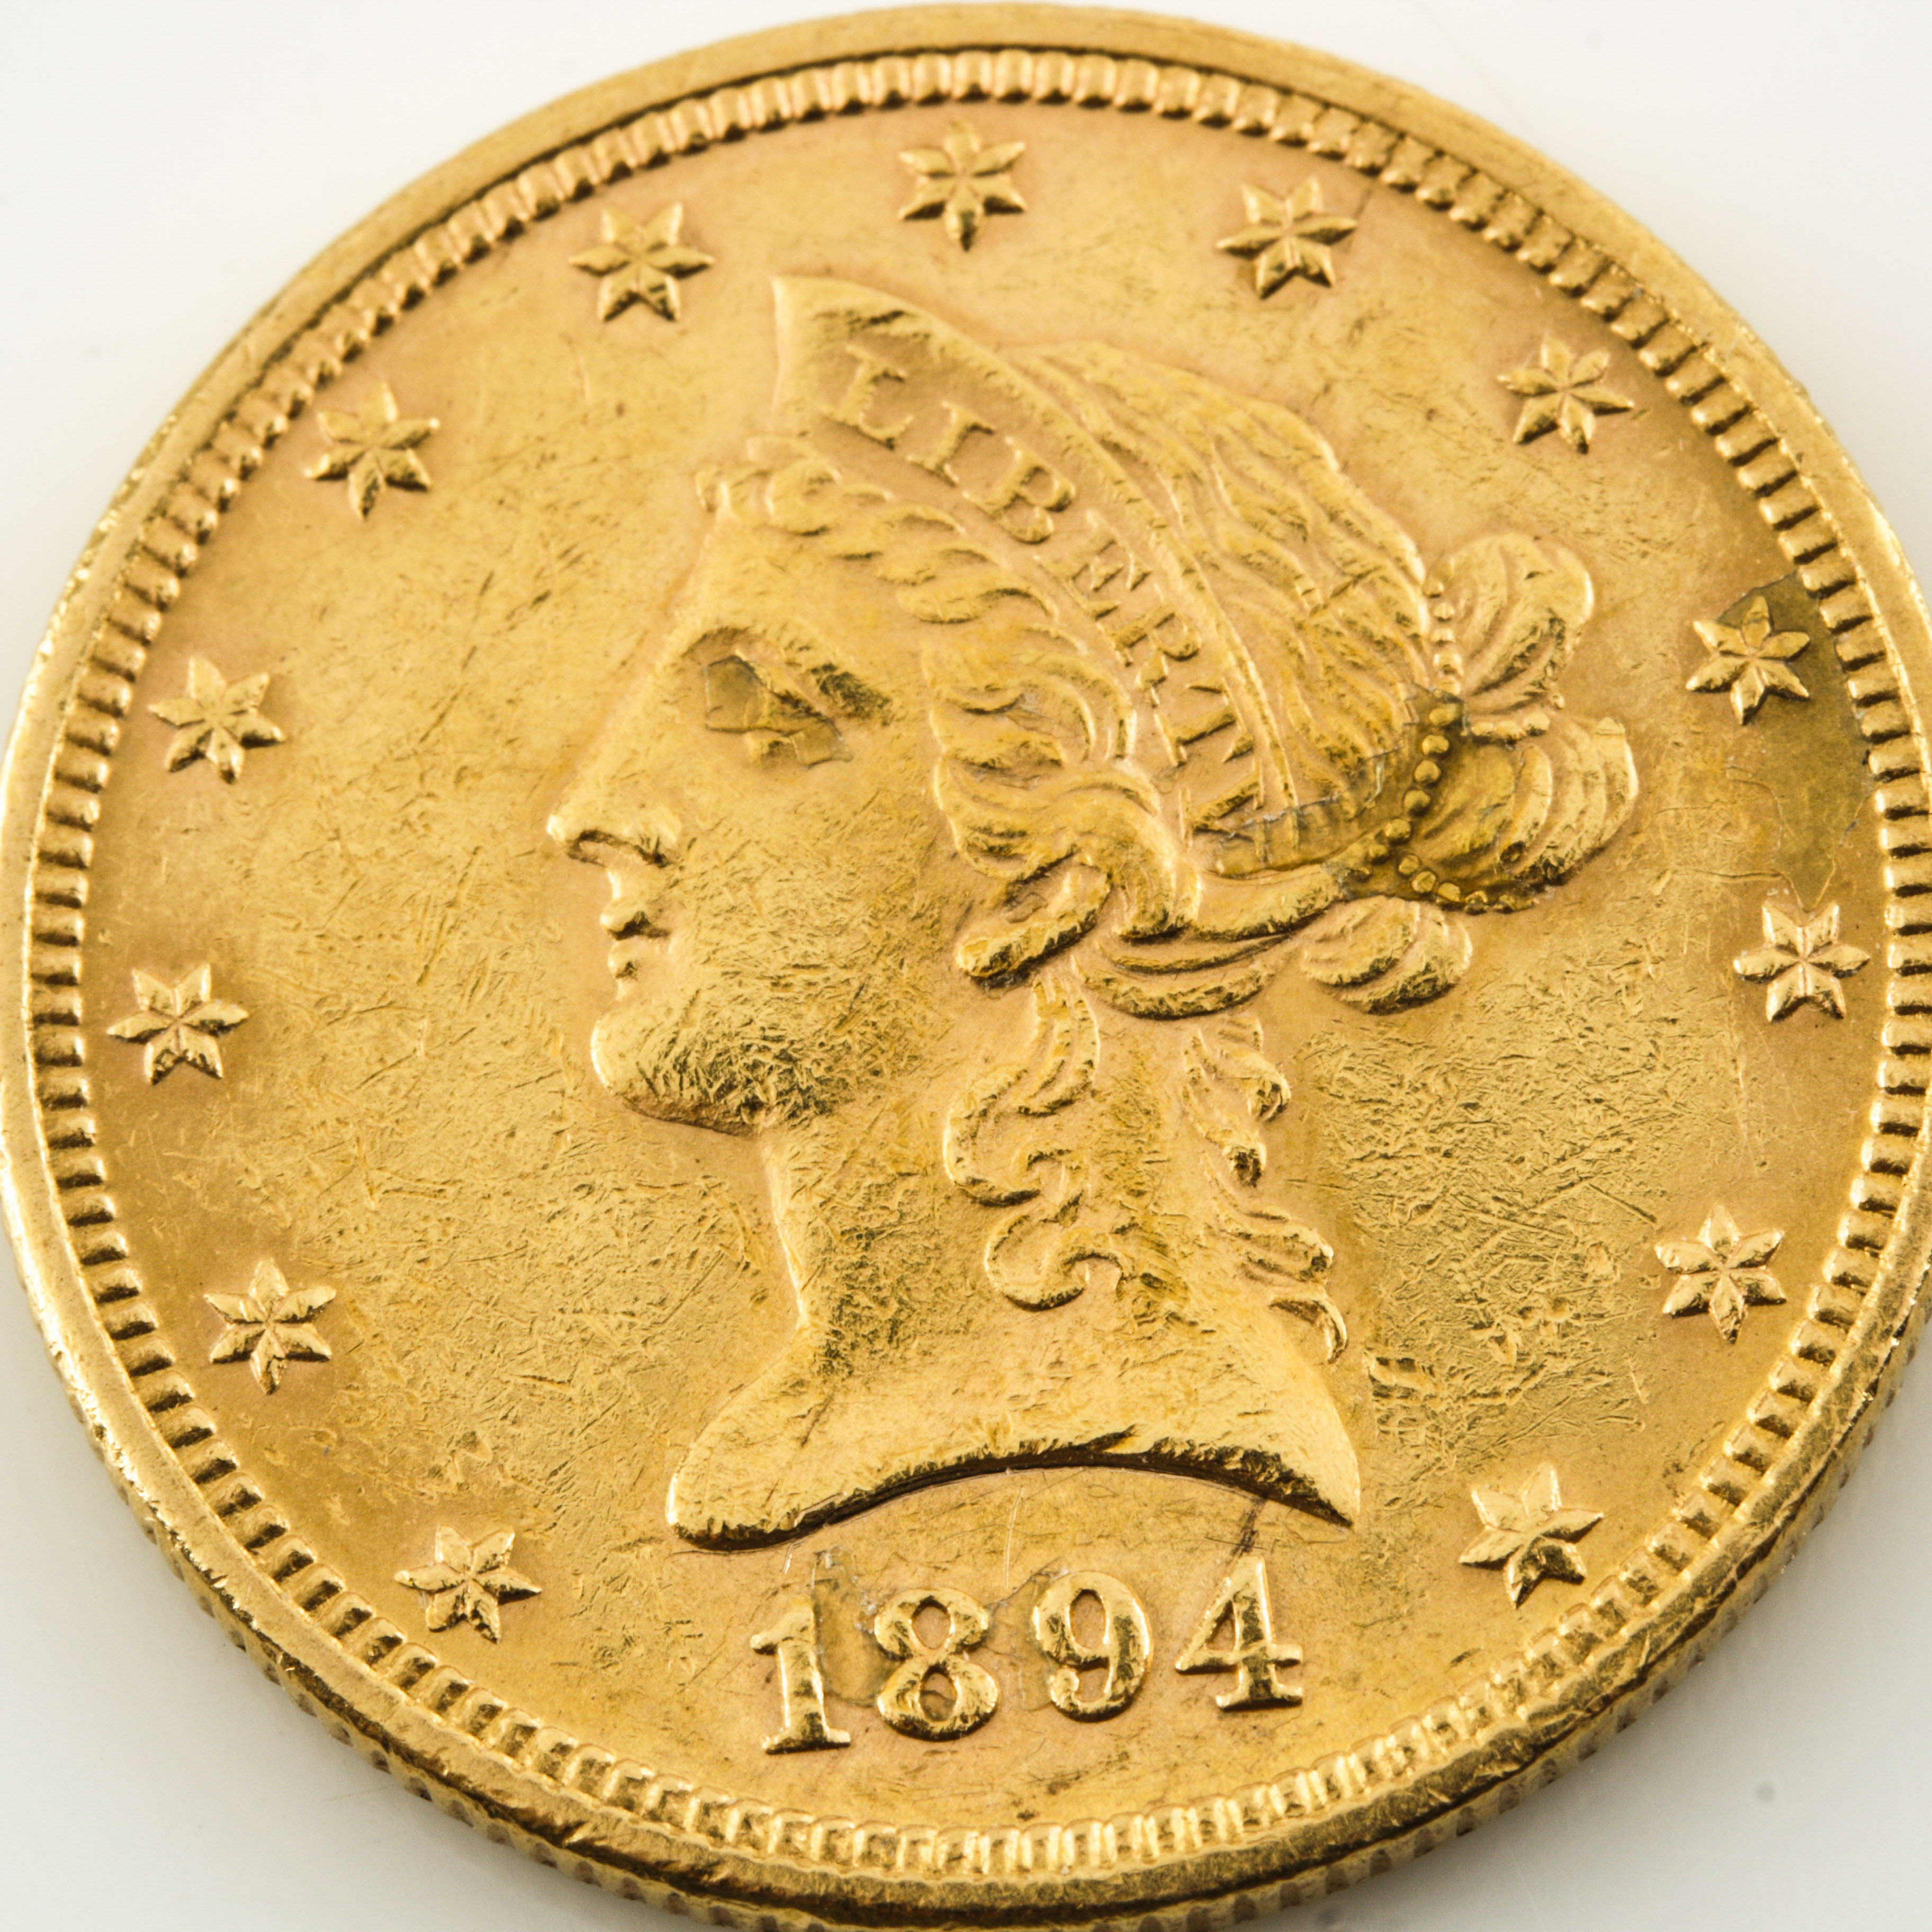 1894 Liberty Head $10 Gold Coin